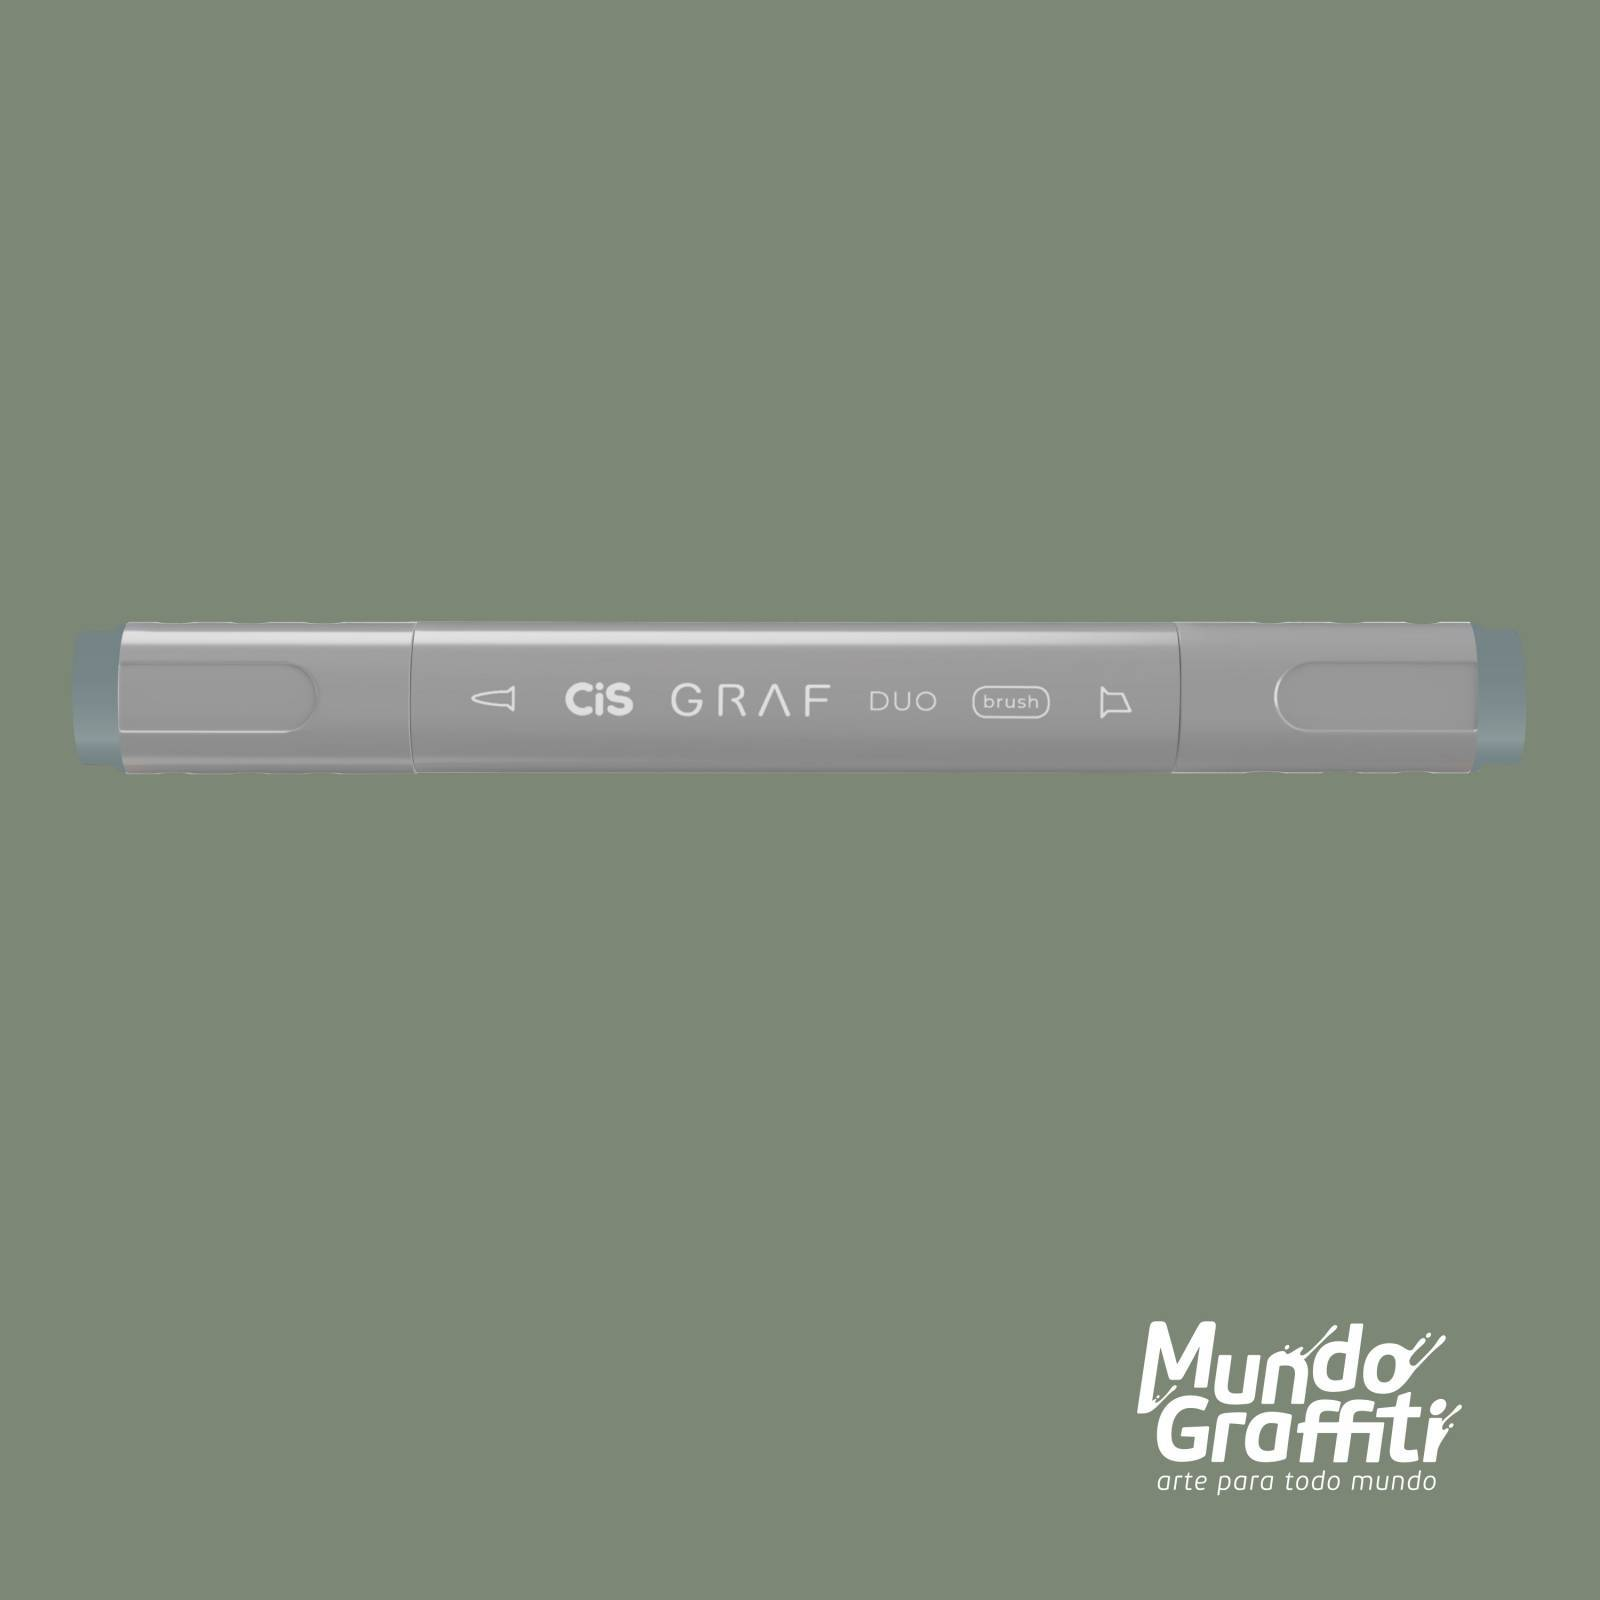 Marcador Cis Graf Duo Brush Green Grey GG3 - Mundo Graffiti